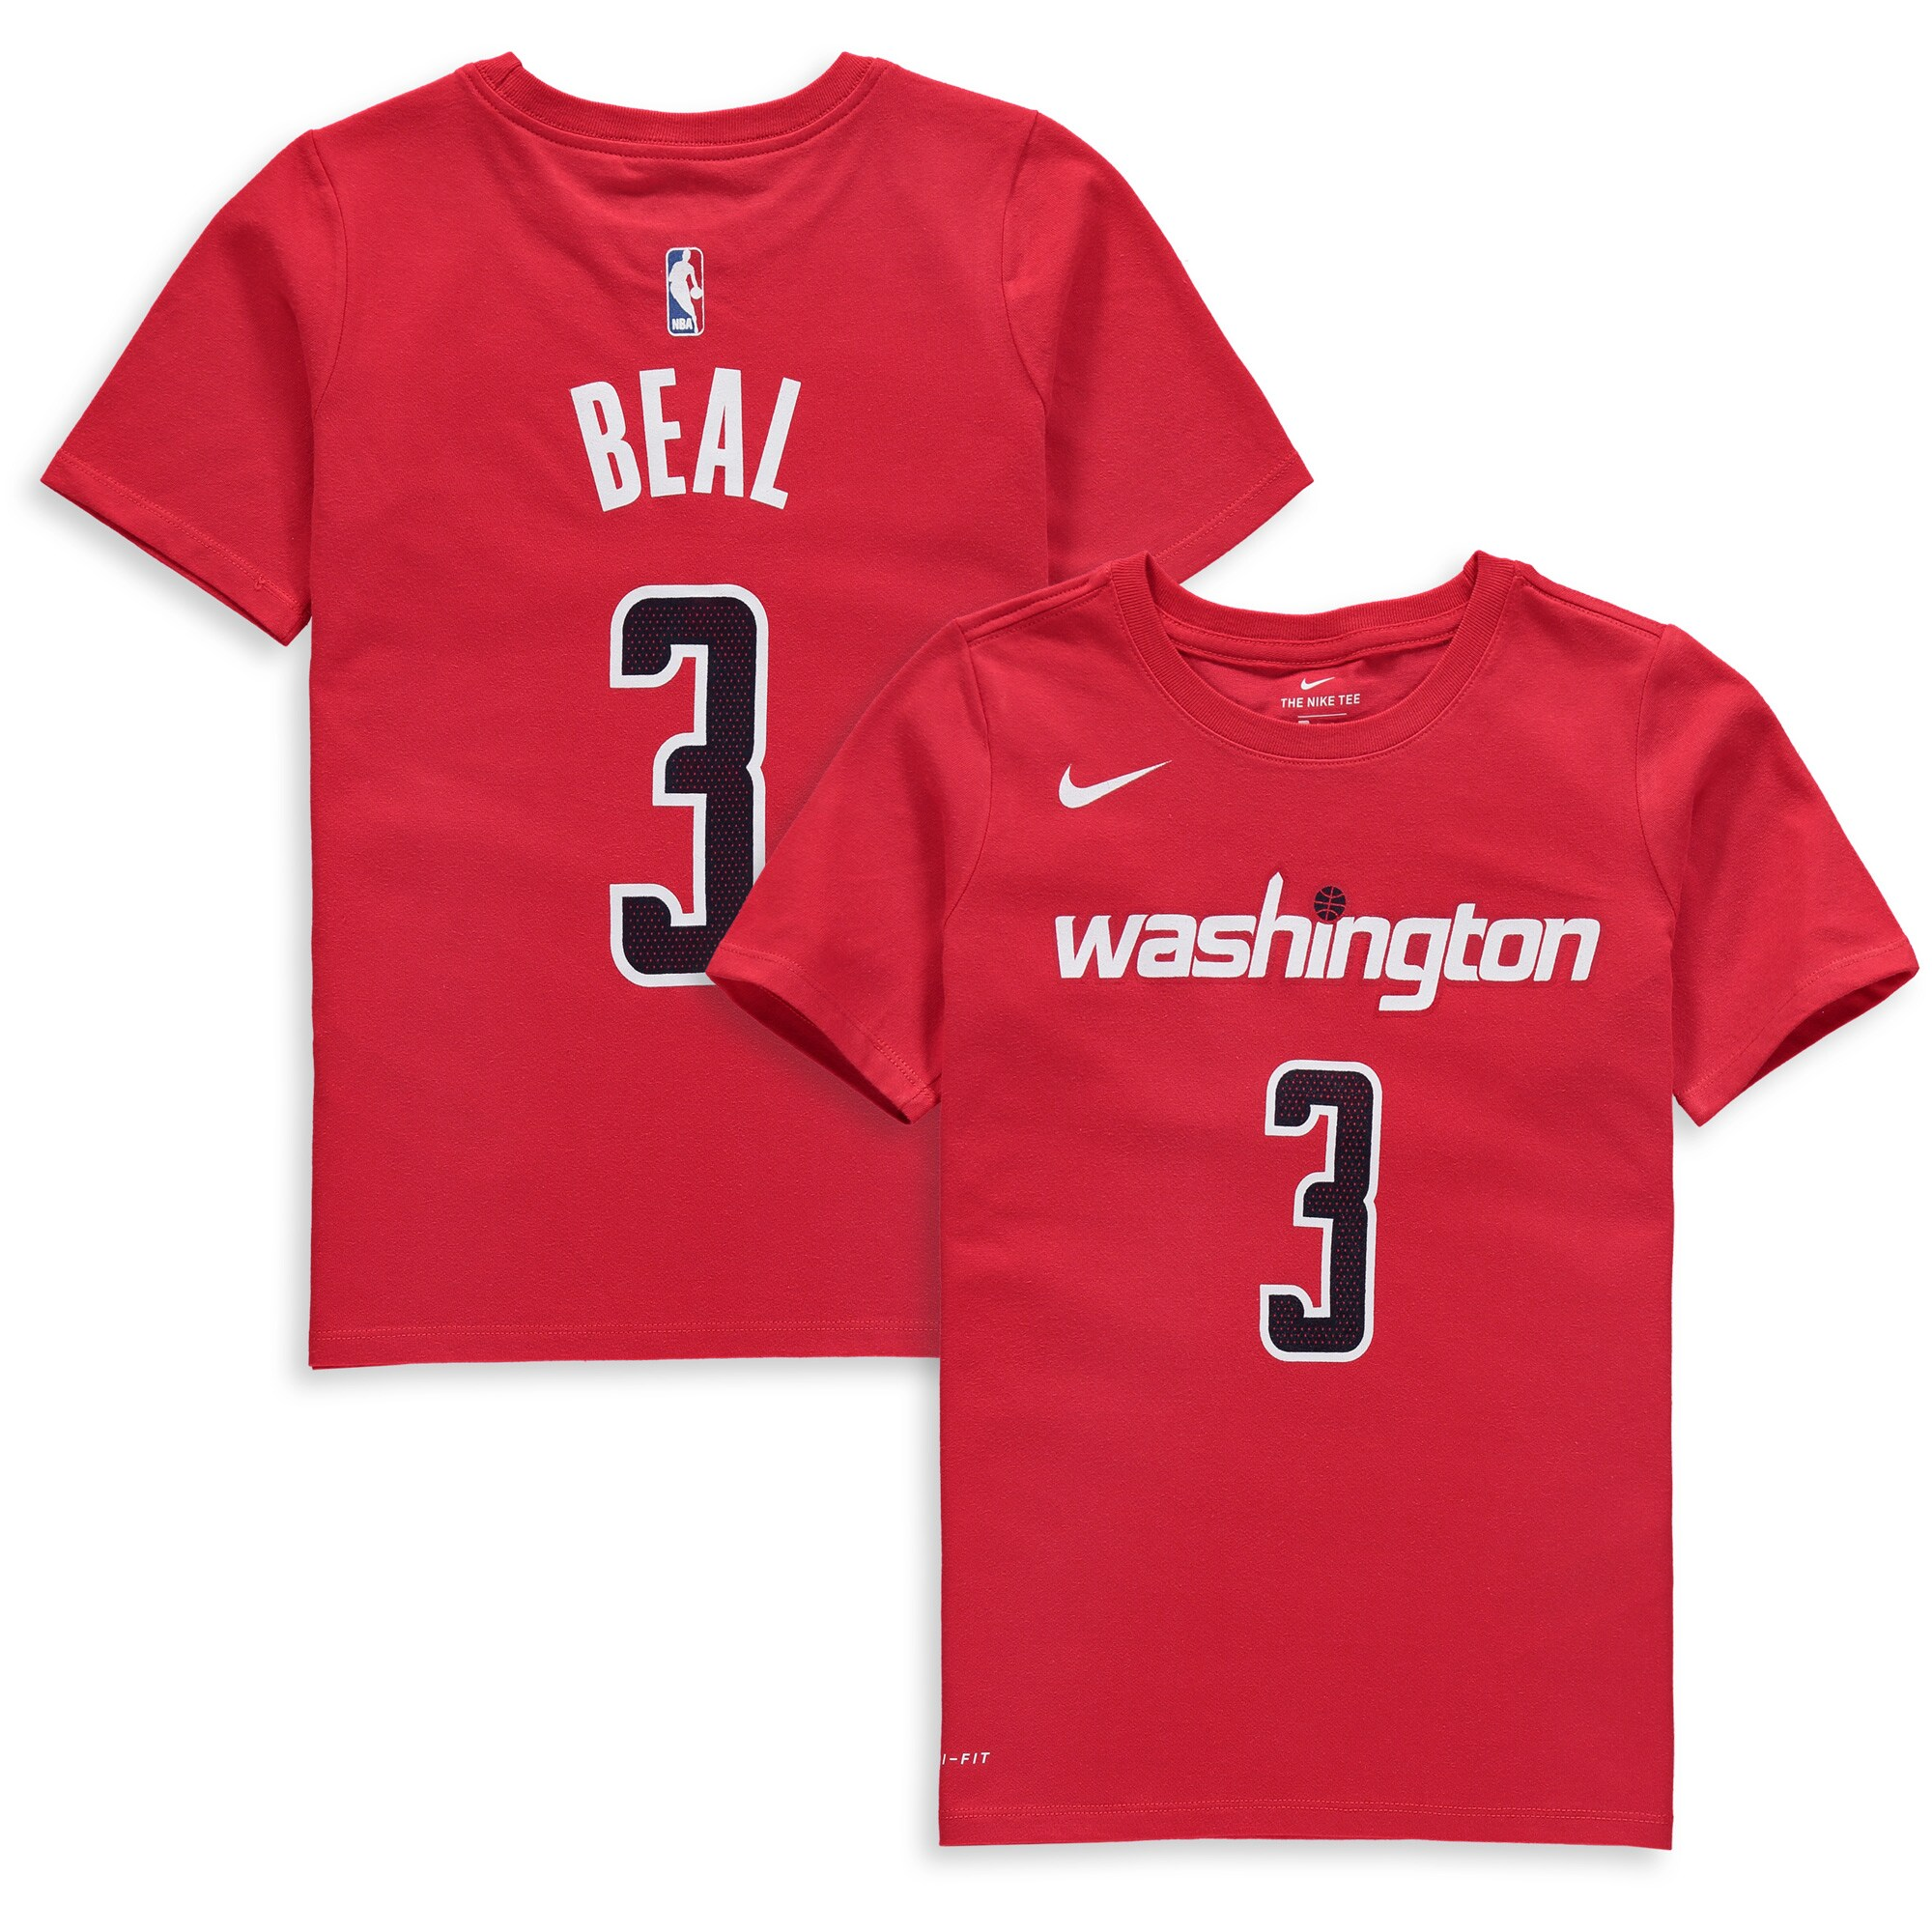 Bradley Beal Washington Wizards Nike Youth Name & Number Performance T-Shirt - Red